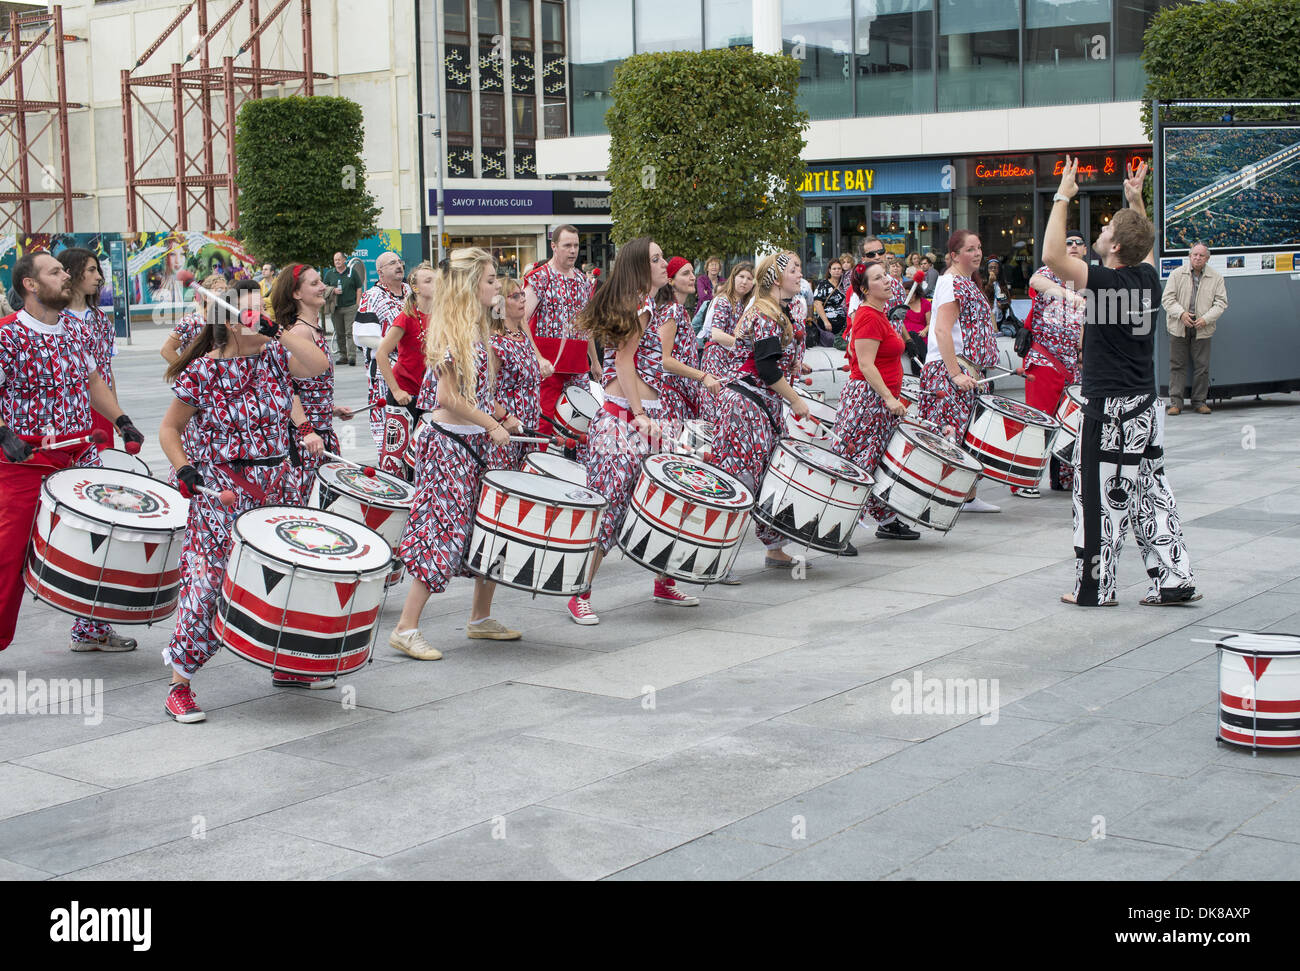 Performers in the Guildhall Square at the Music in the City music event in Southampton, Hampshire, England, UK - Stock Image